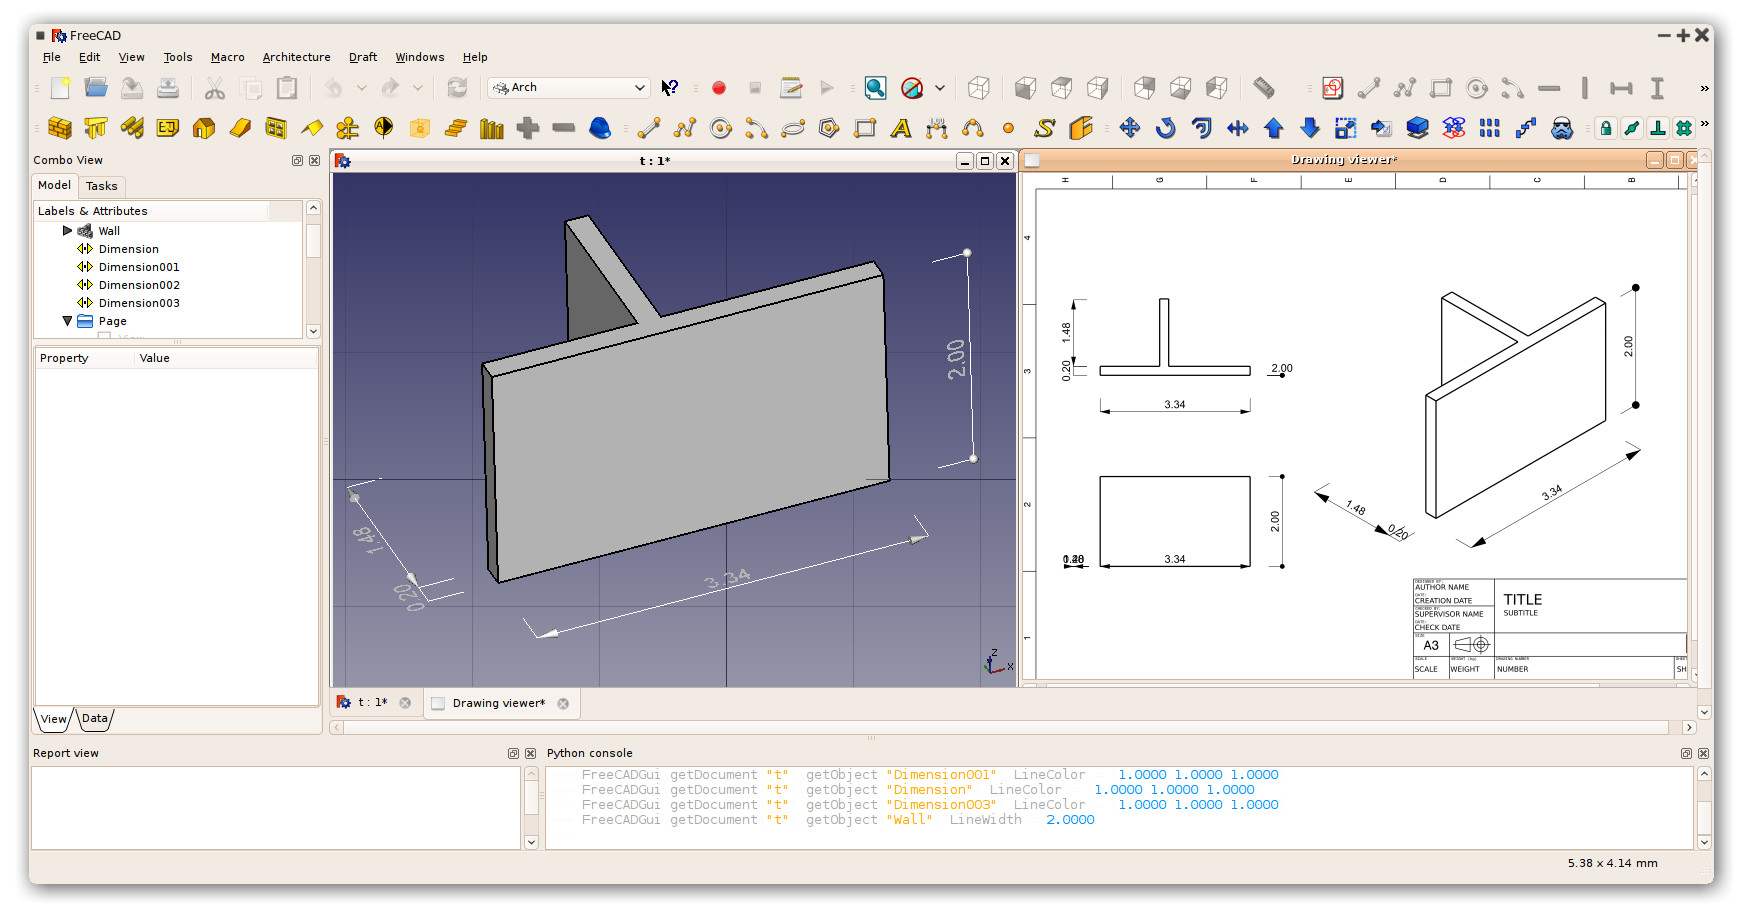 how to create text indent in freecad